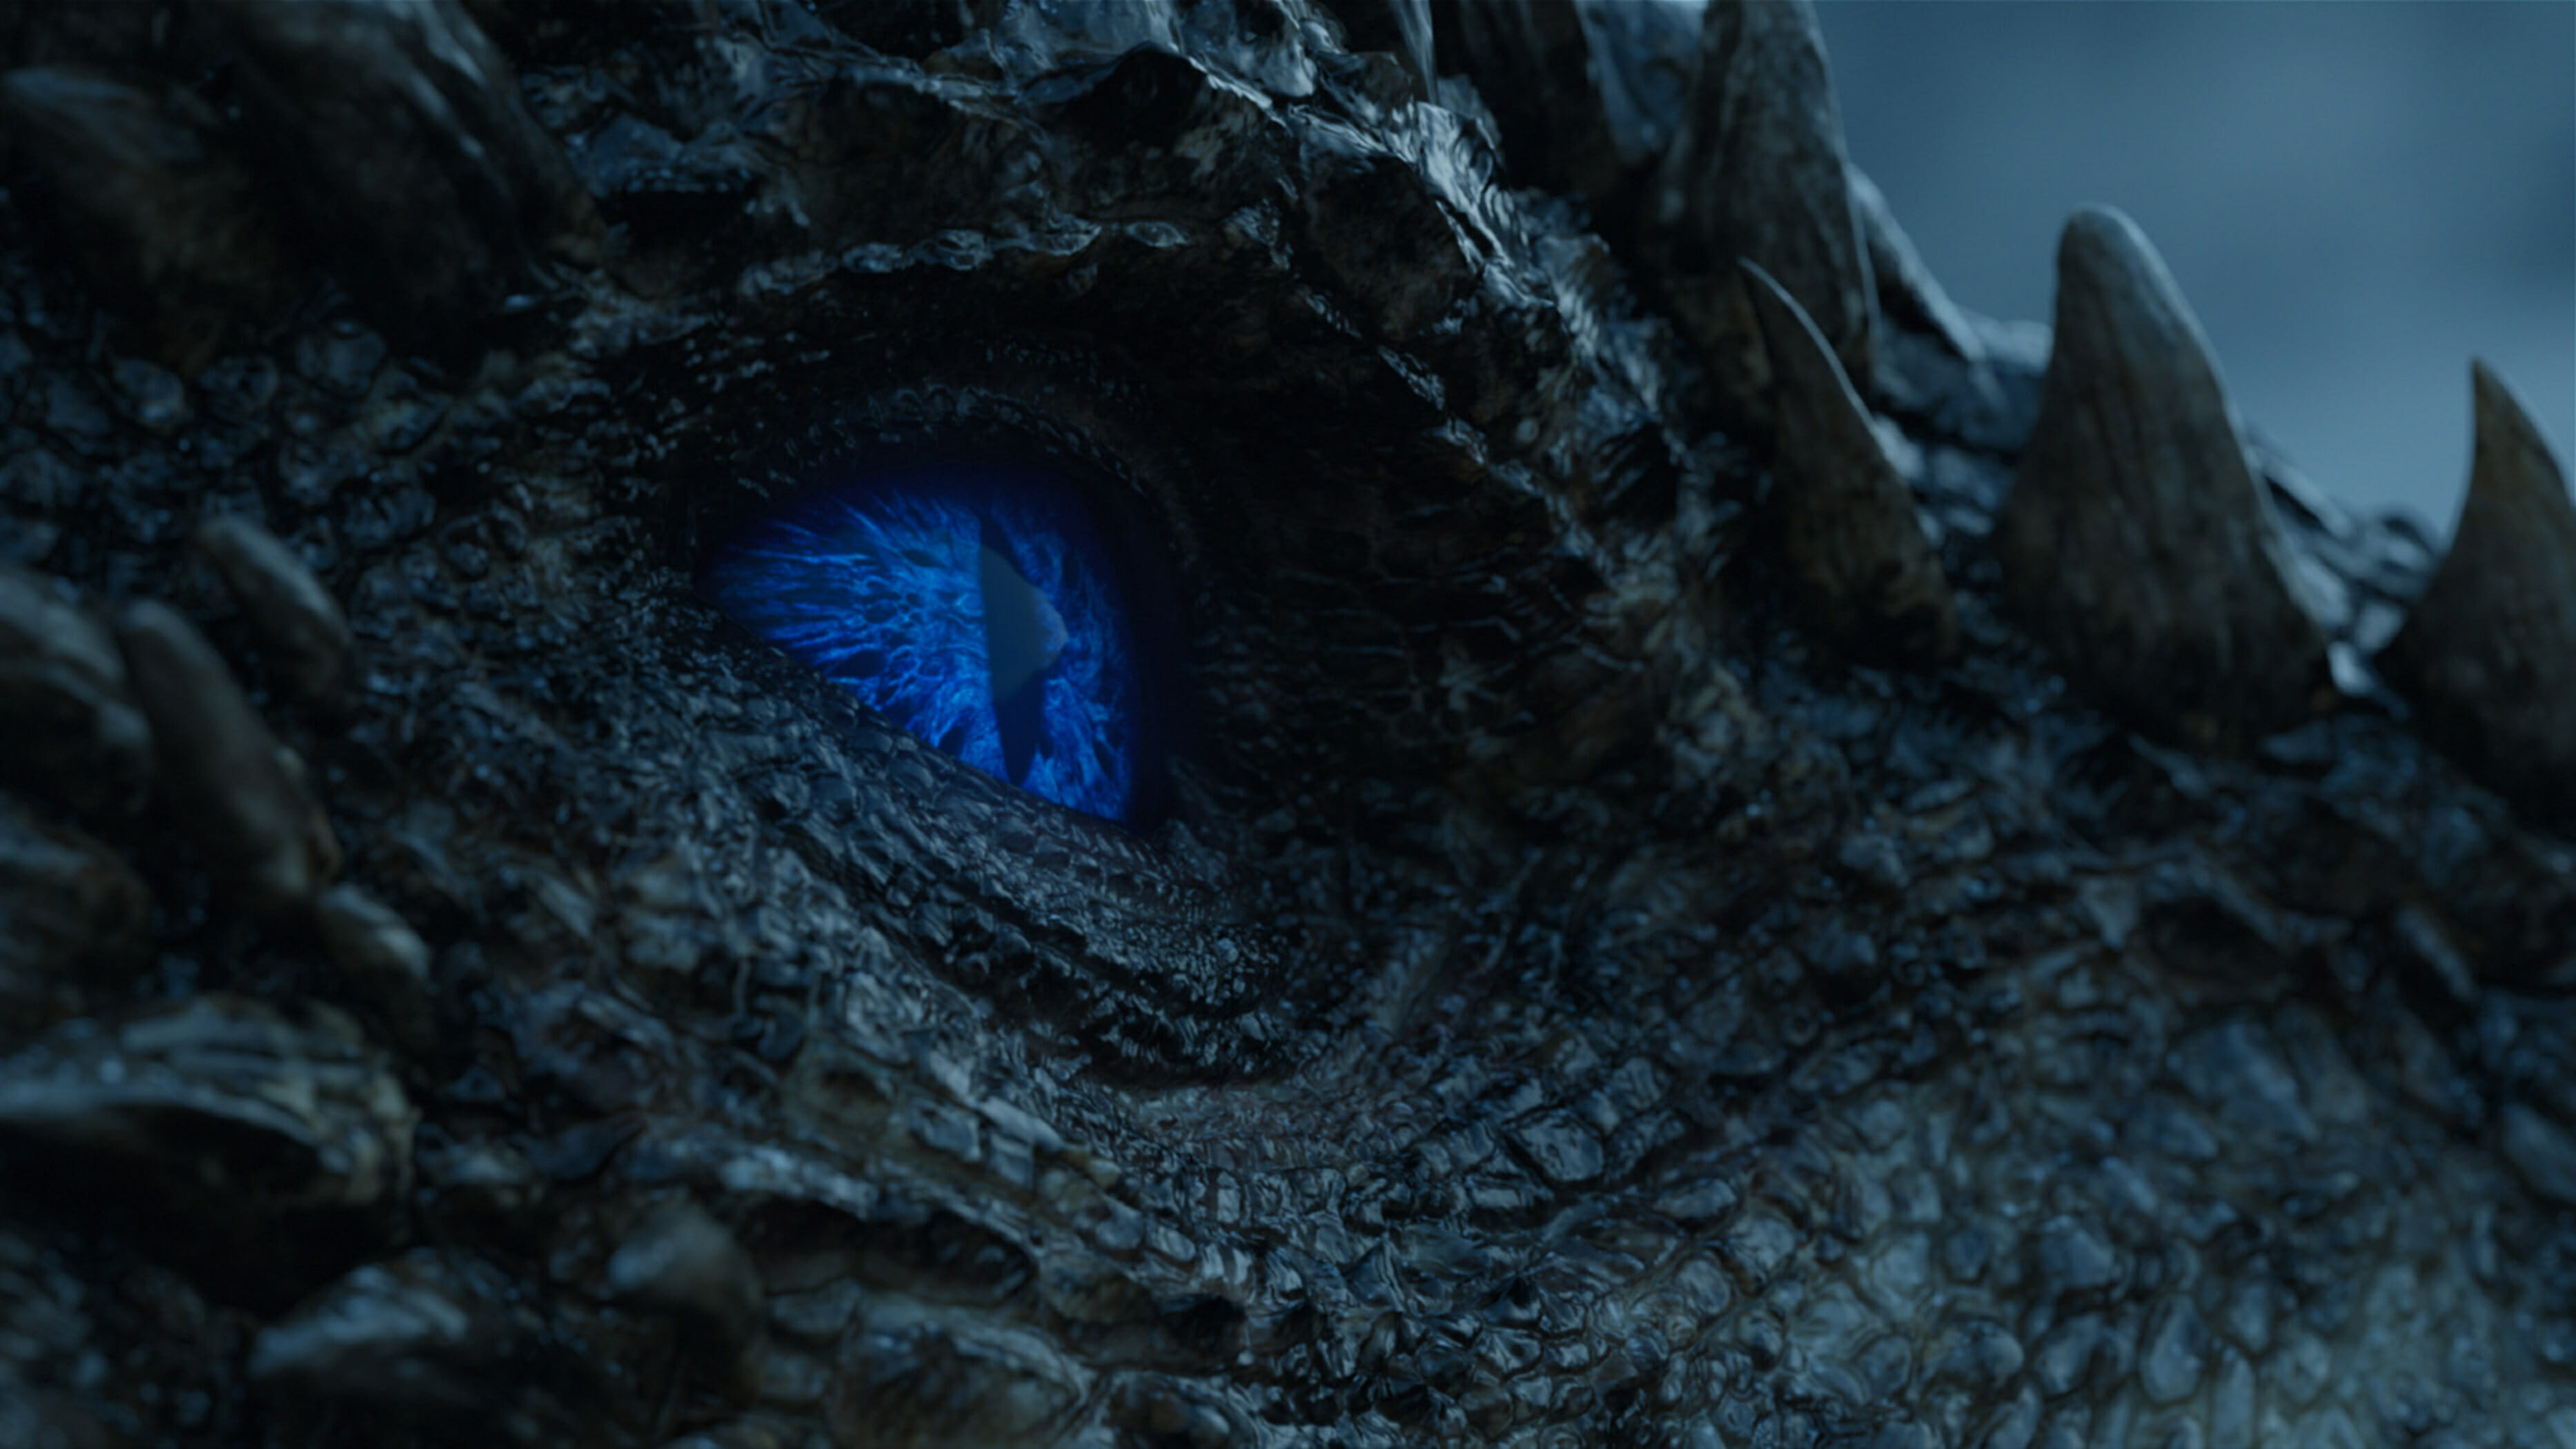 viserion night king game of thrones